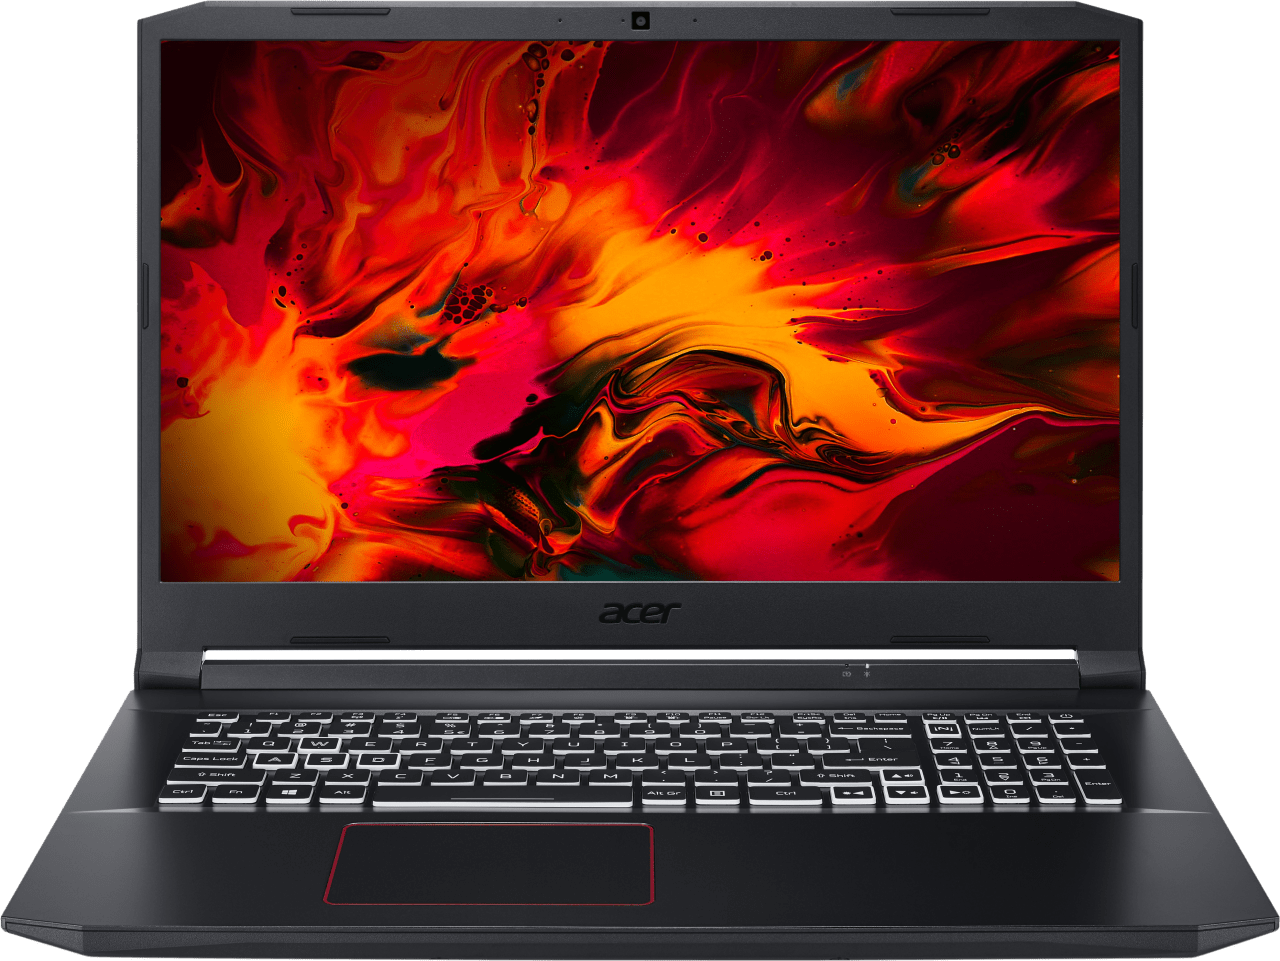 Schwarz / Rot Acer Nitro 5 AN517-52-71C7 - Gaming Notebook - Intel® Core™ i7-10750H - 16GB - 512GB SSD - NVIDIA® GeForce® RTX 3060.1